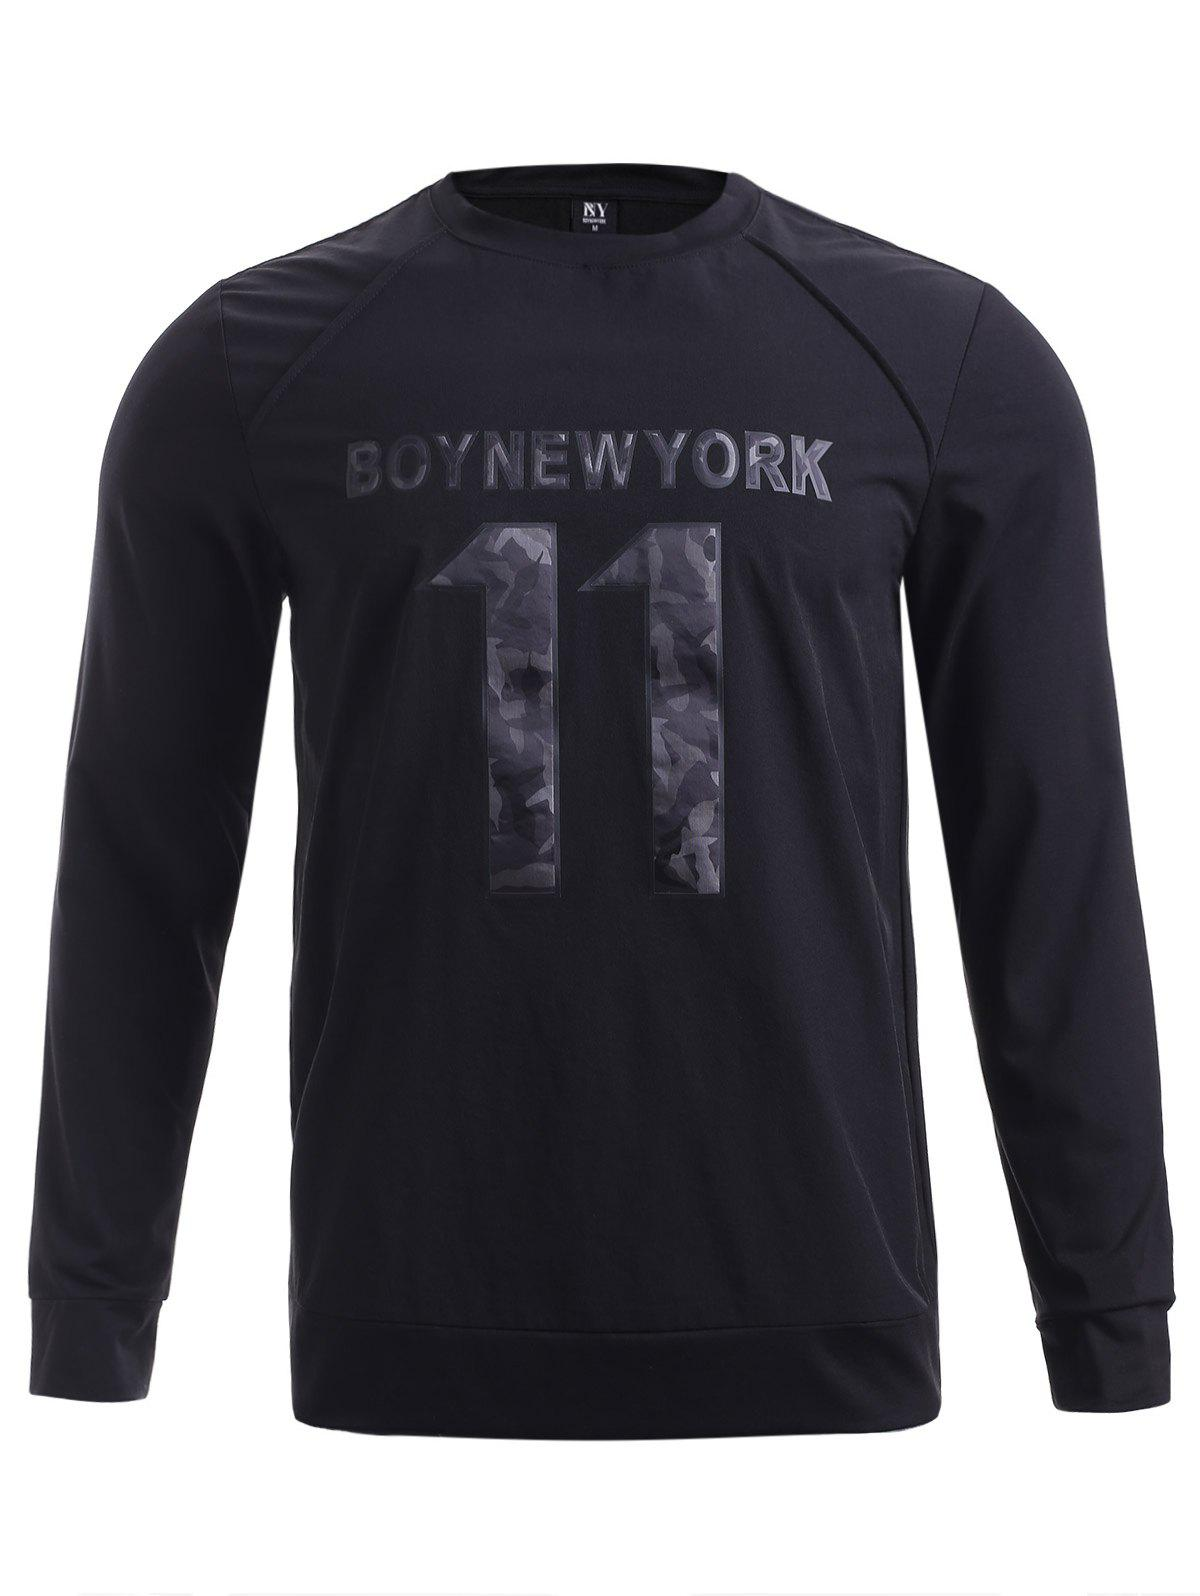 BoyNewYork Round Neck Number Printed Spliced Design Sweatshirt - BLACK XL